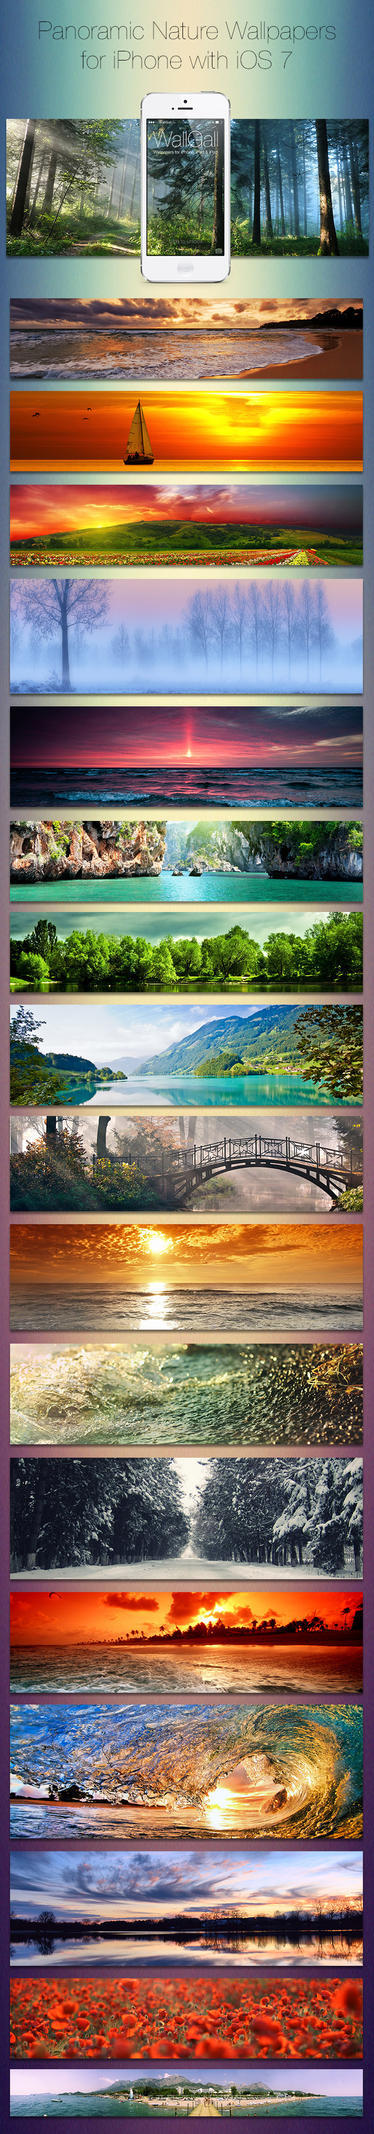 iOS 7 Panoramic wallpaper pack for iPhone, Nature by coLdik